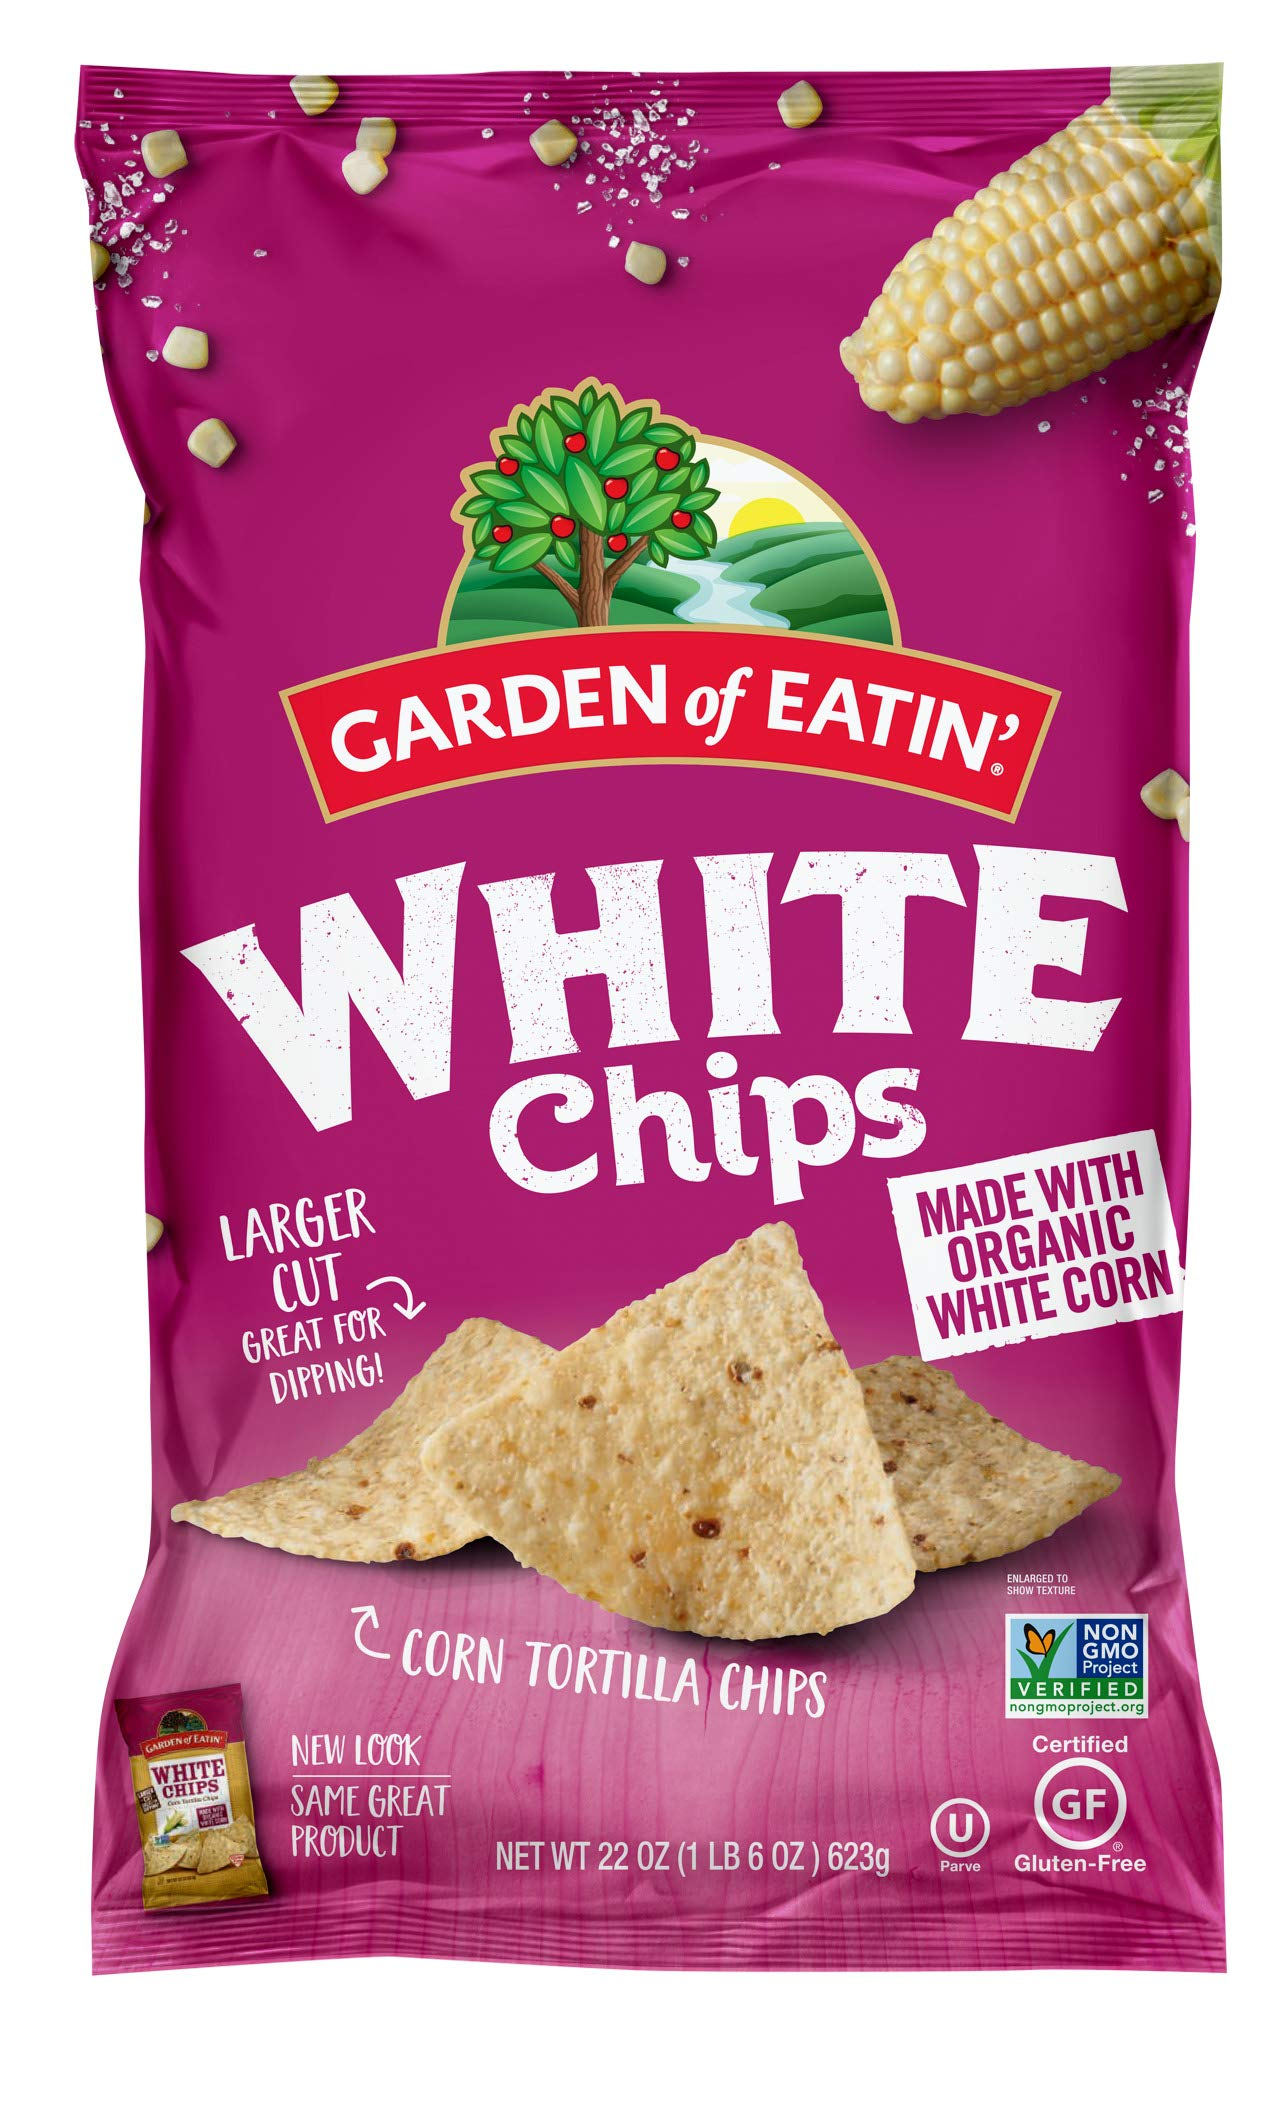 Garden of Eatin' White Corn Tortilla Chips, 22 oz. (Pack of 10) (Packaging May Vary) by Garden of Eatin'